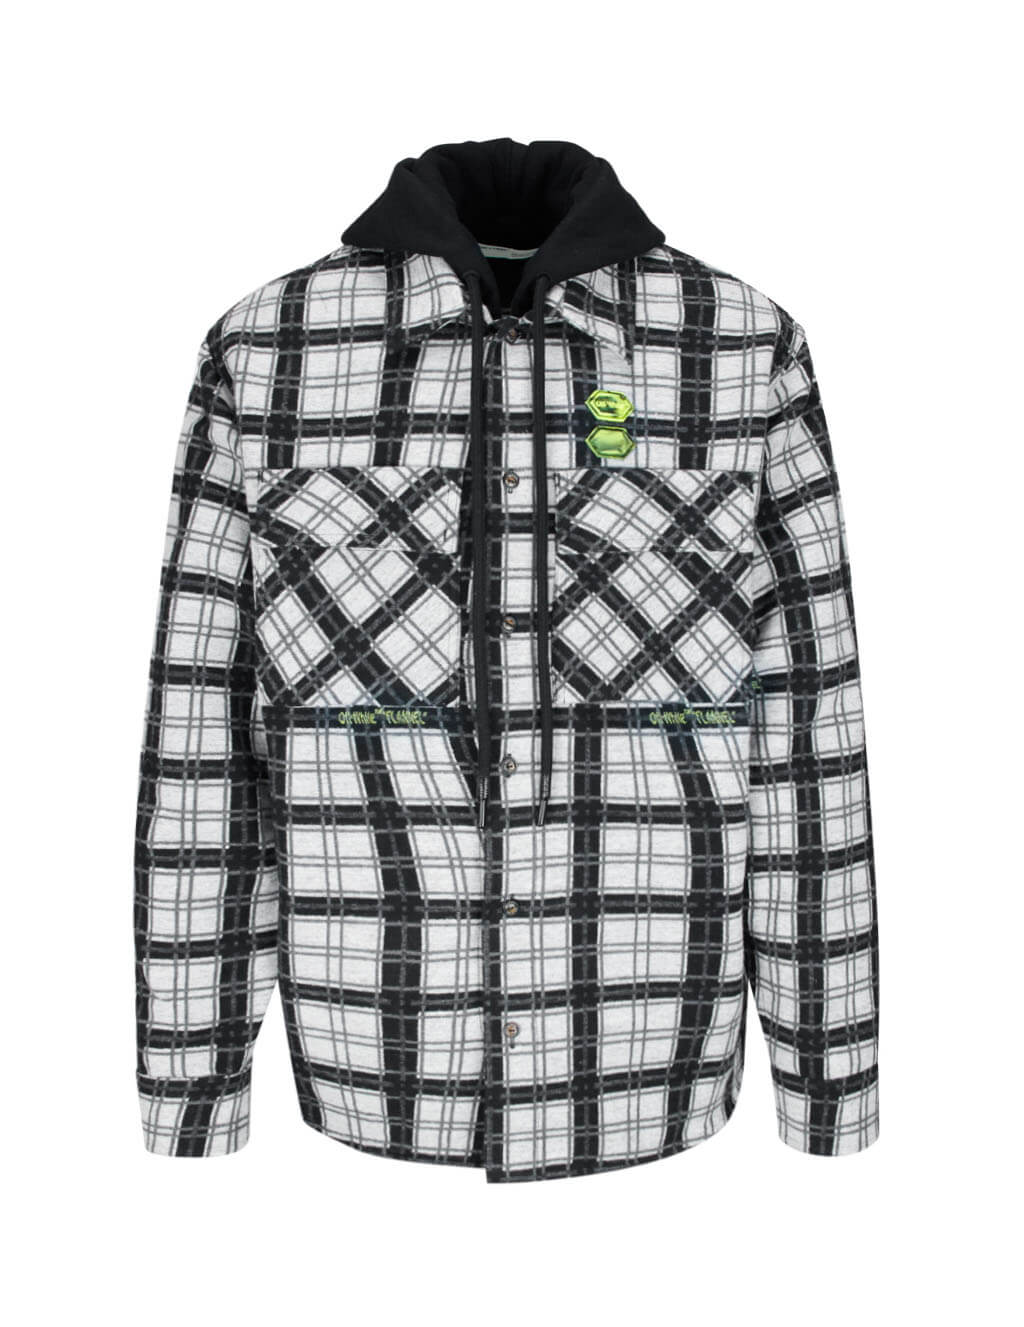 Off-White Men's Black Checked Hoodie Layer Shirt OMGA100R20G530010100